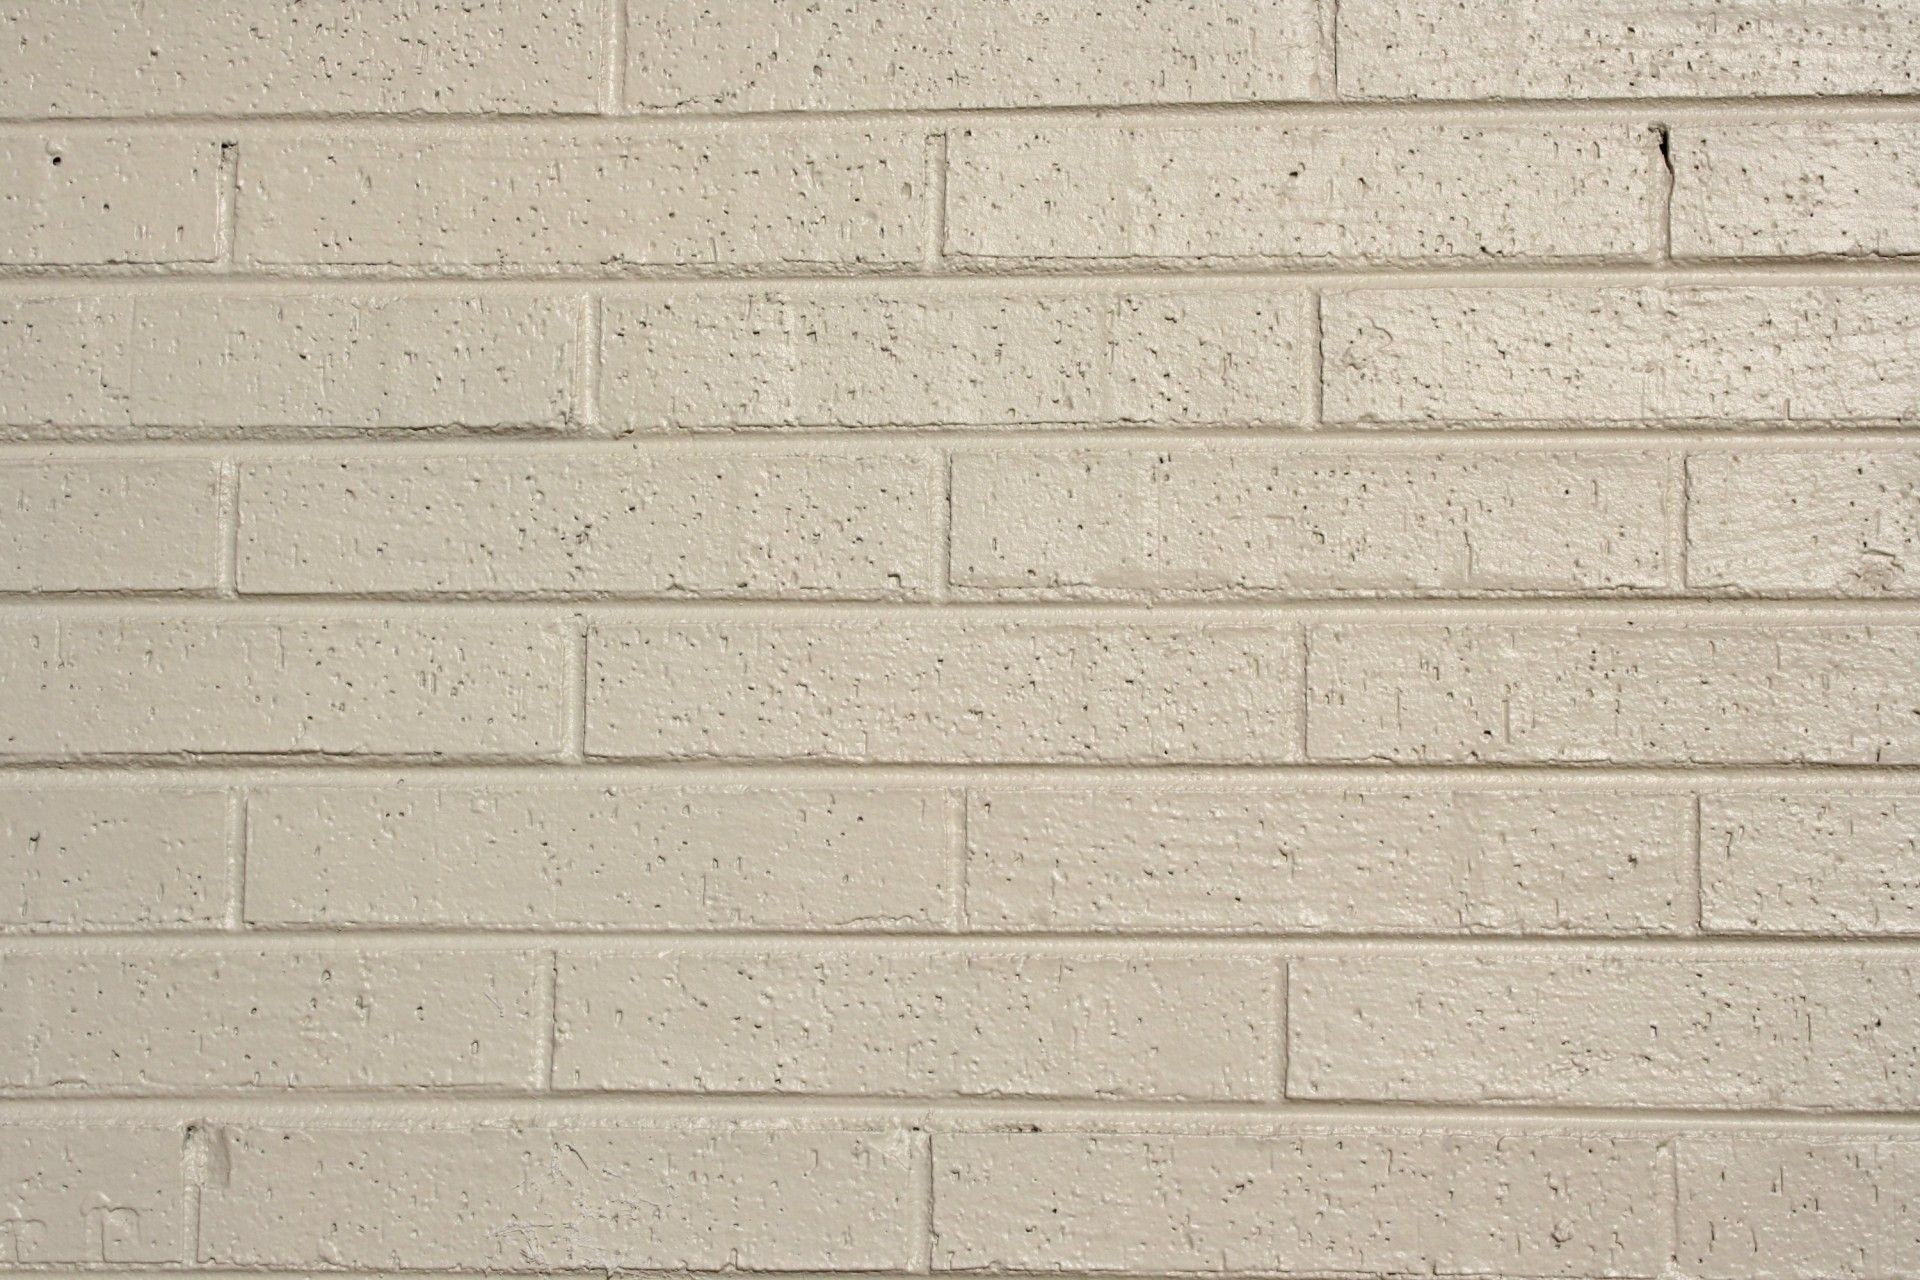 Lilac Or Lavender Painted Brick Wall Texture  Free High